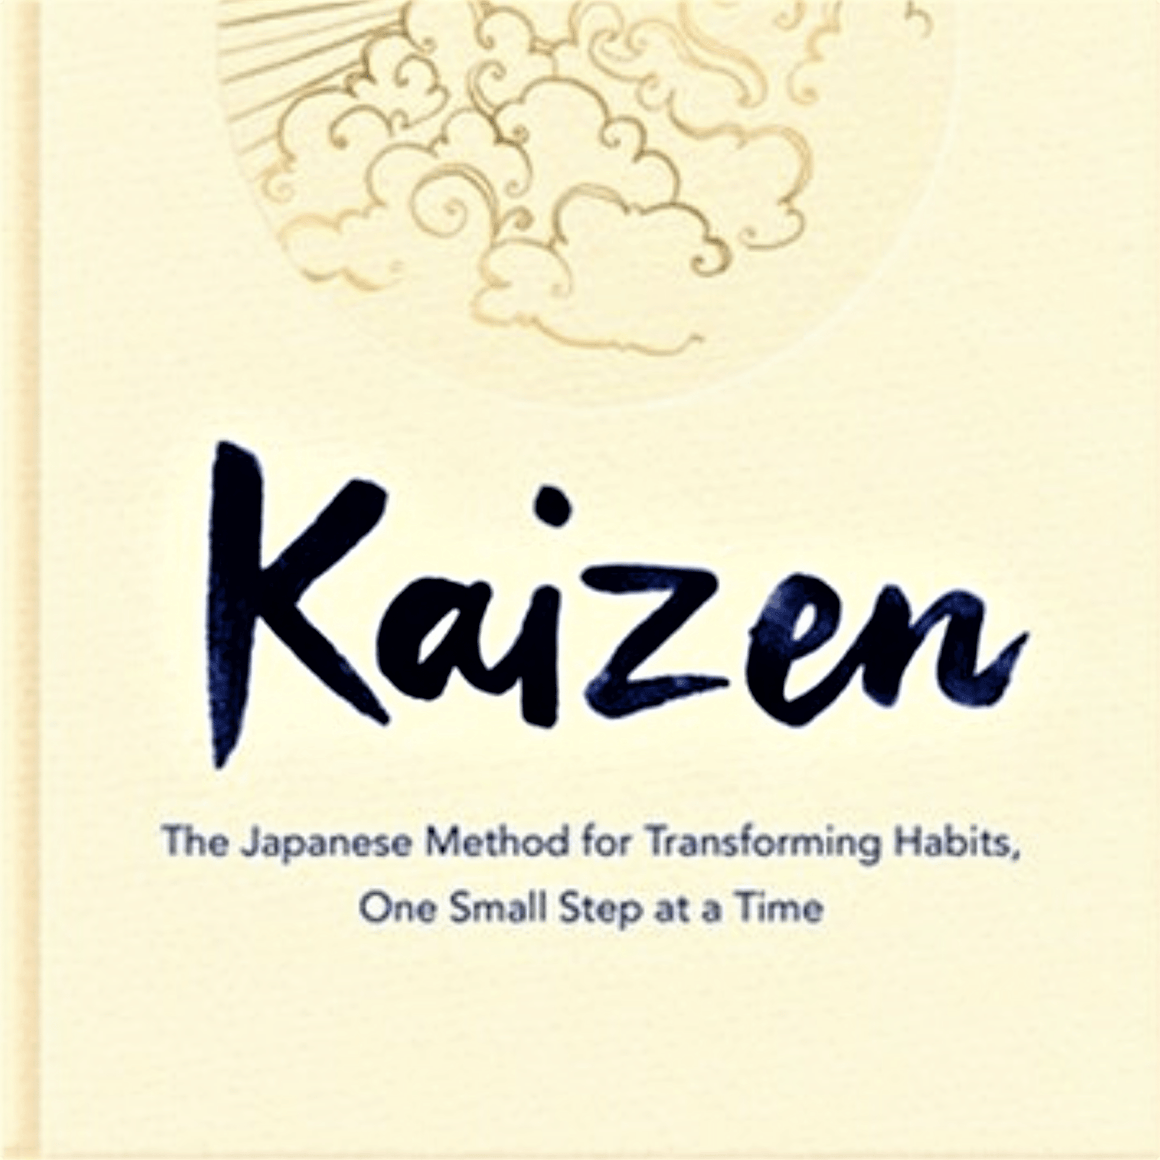 KAIZEN: THE JAPANESE METHOD FOR TRANSFORMING HABITS, ONE SMALL STEP AT A TIME BY SARAH HARVEY - Bowerbird on Argyle